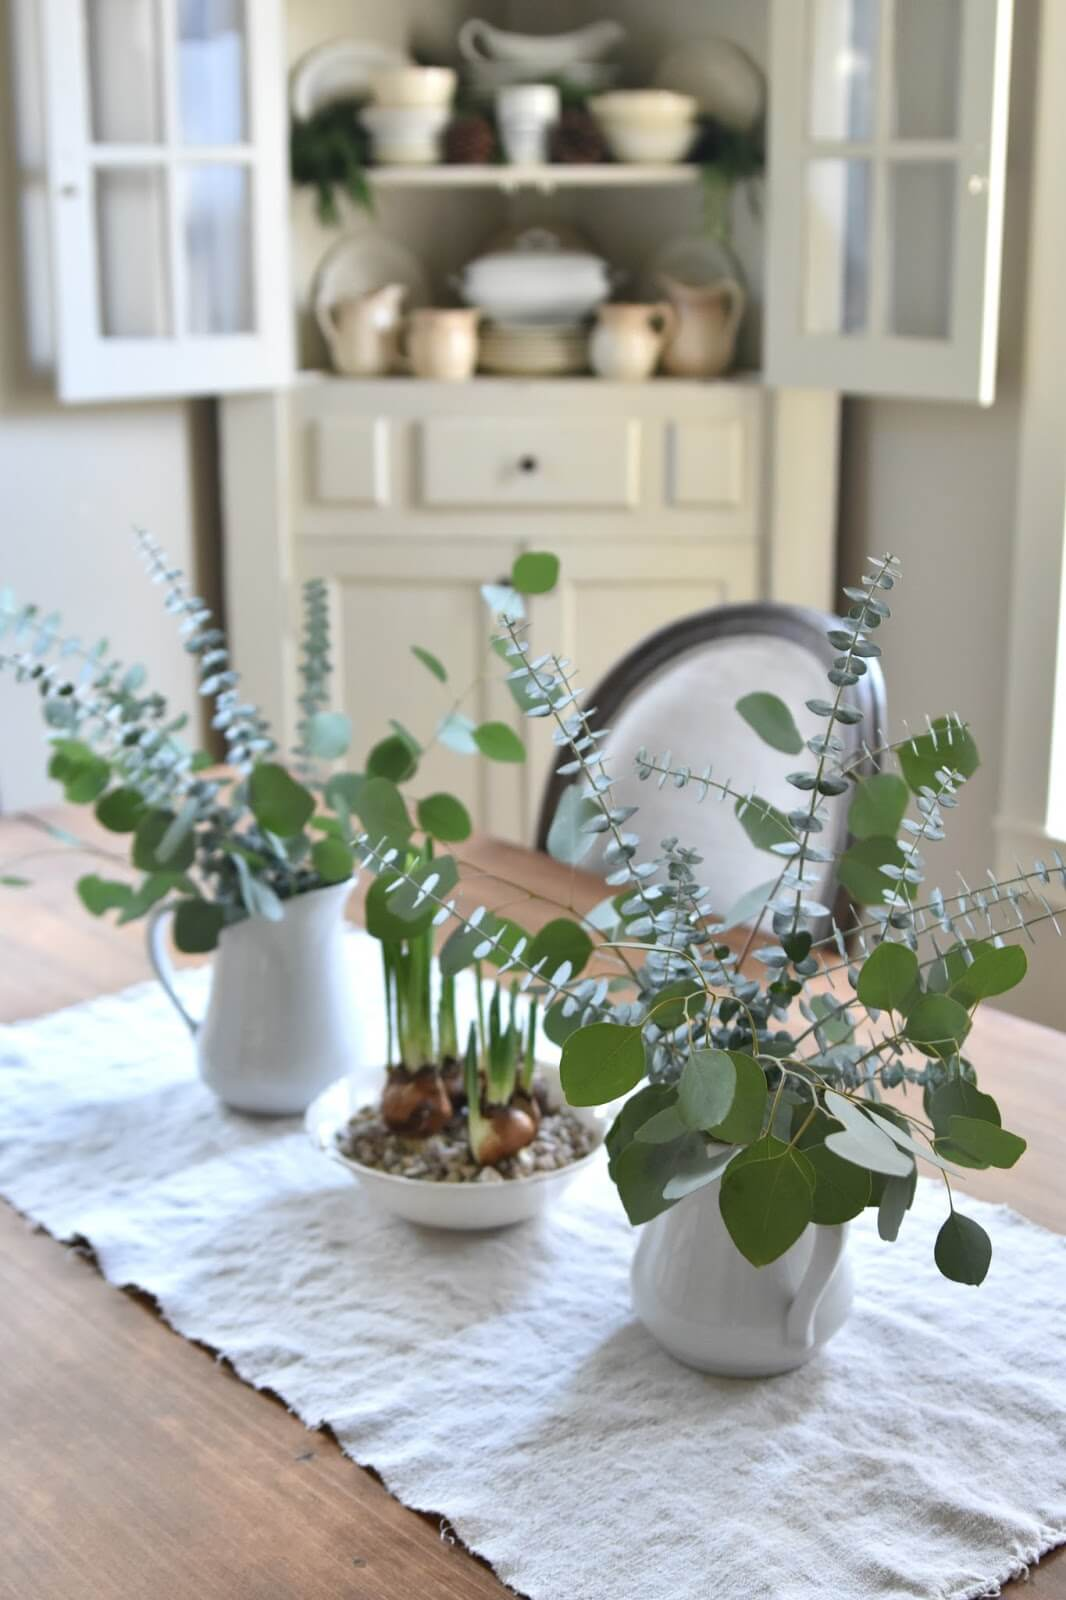 Gentle Green and Bright White Farmhouse Display